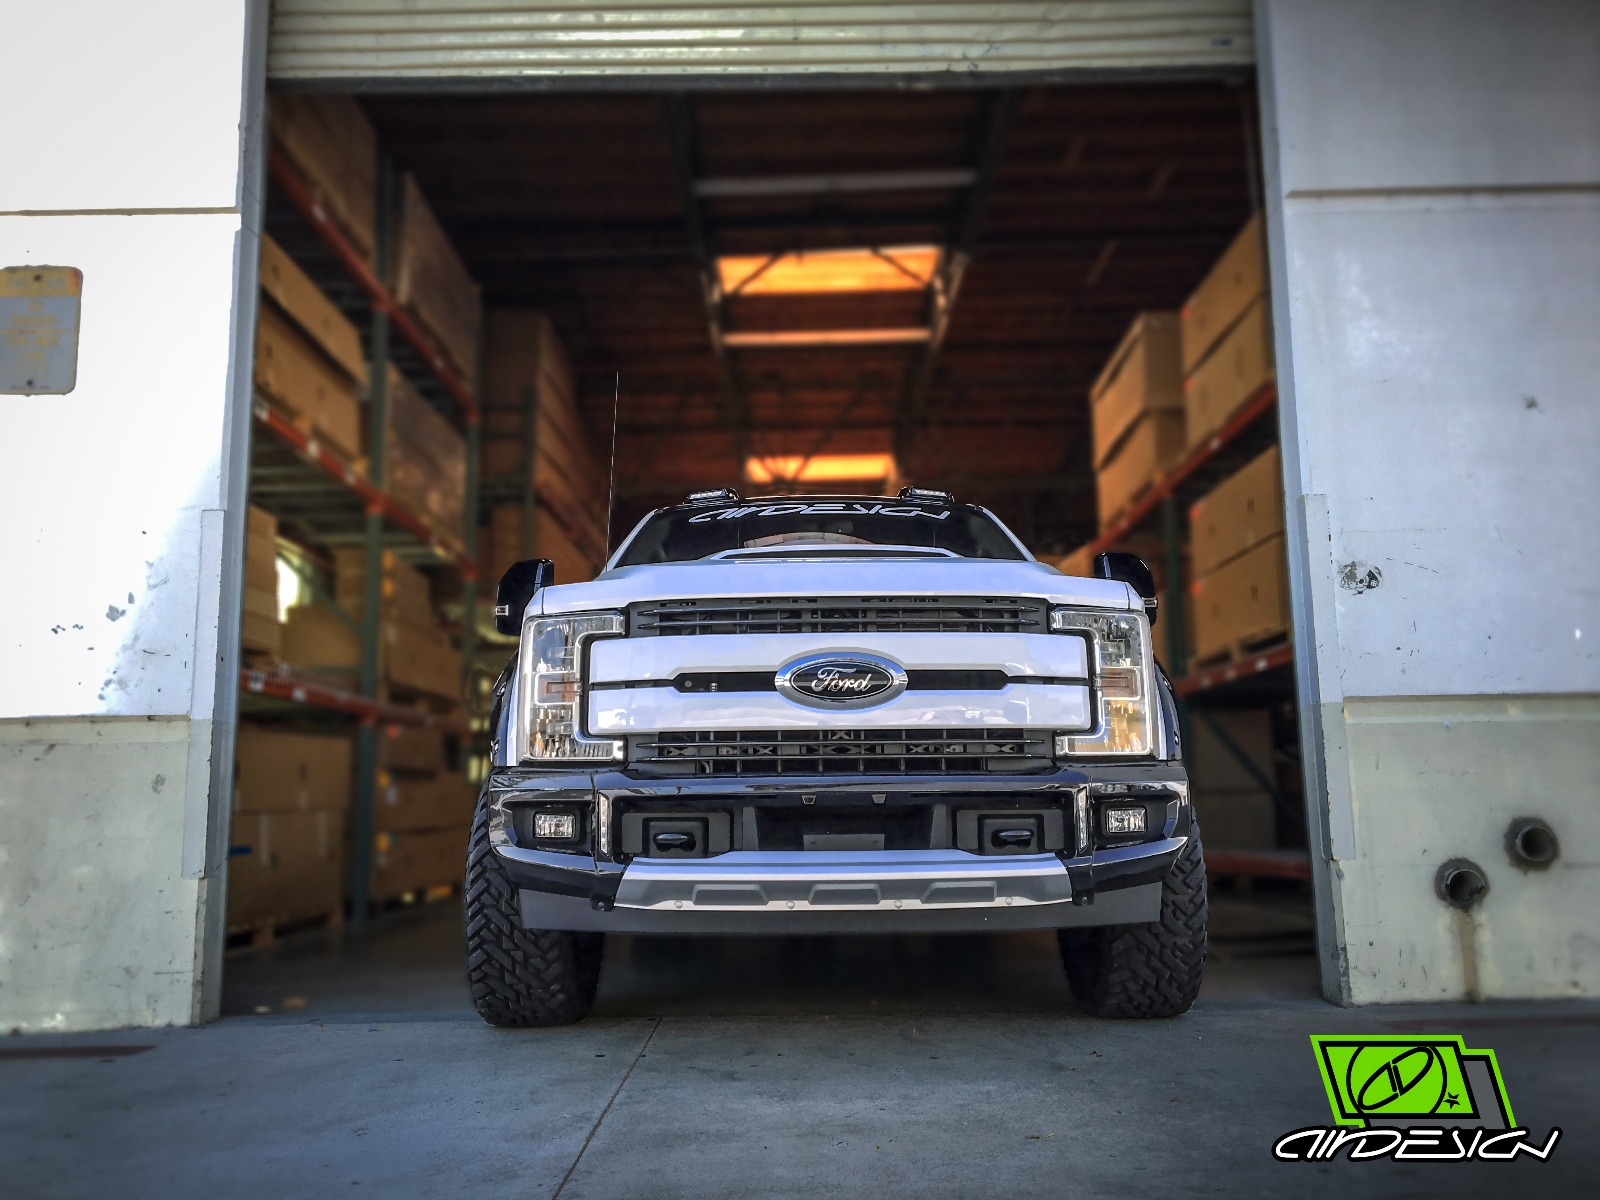 Air Design Chevy F-250 Off Road Body Kit